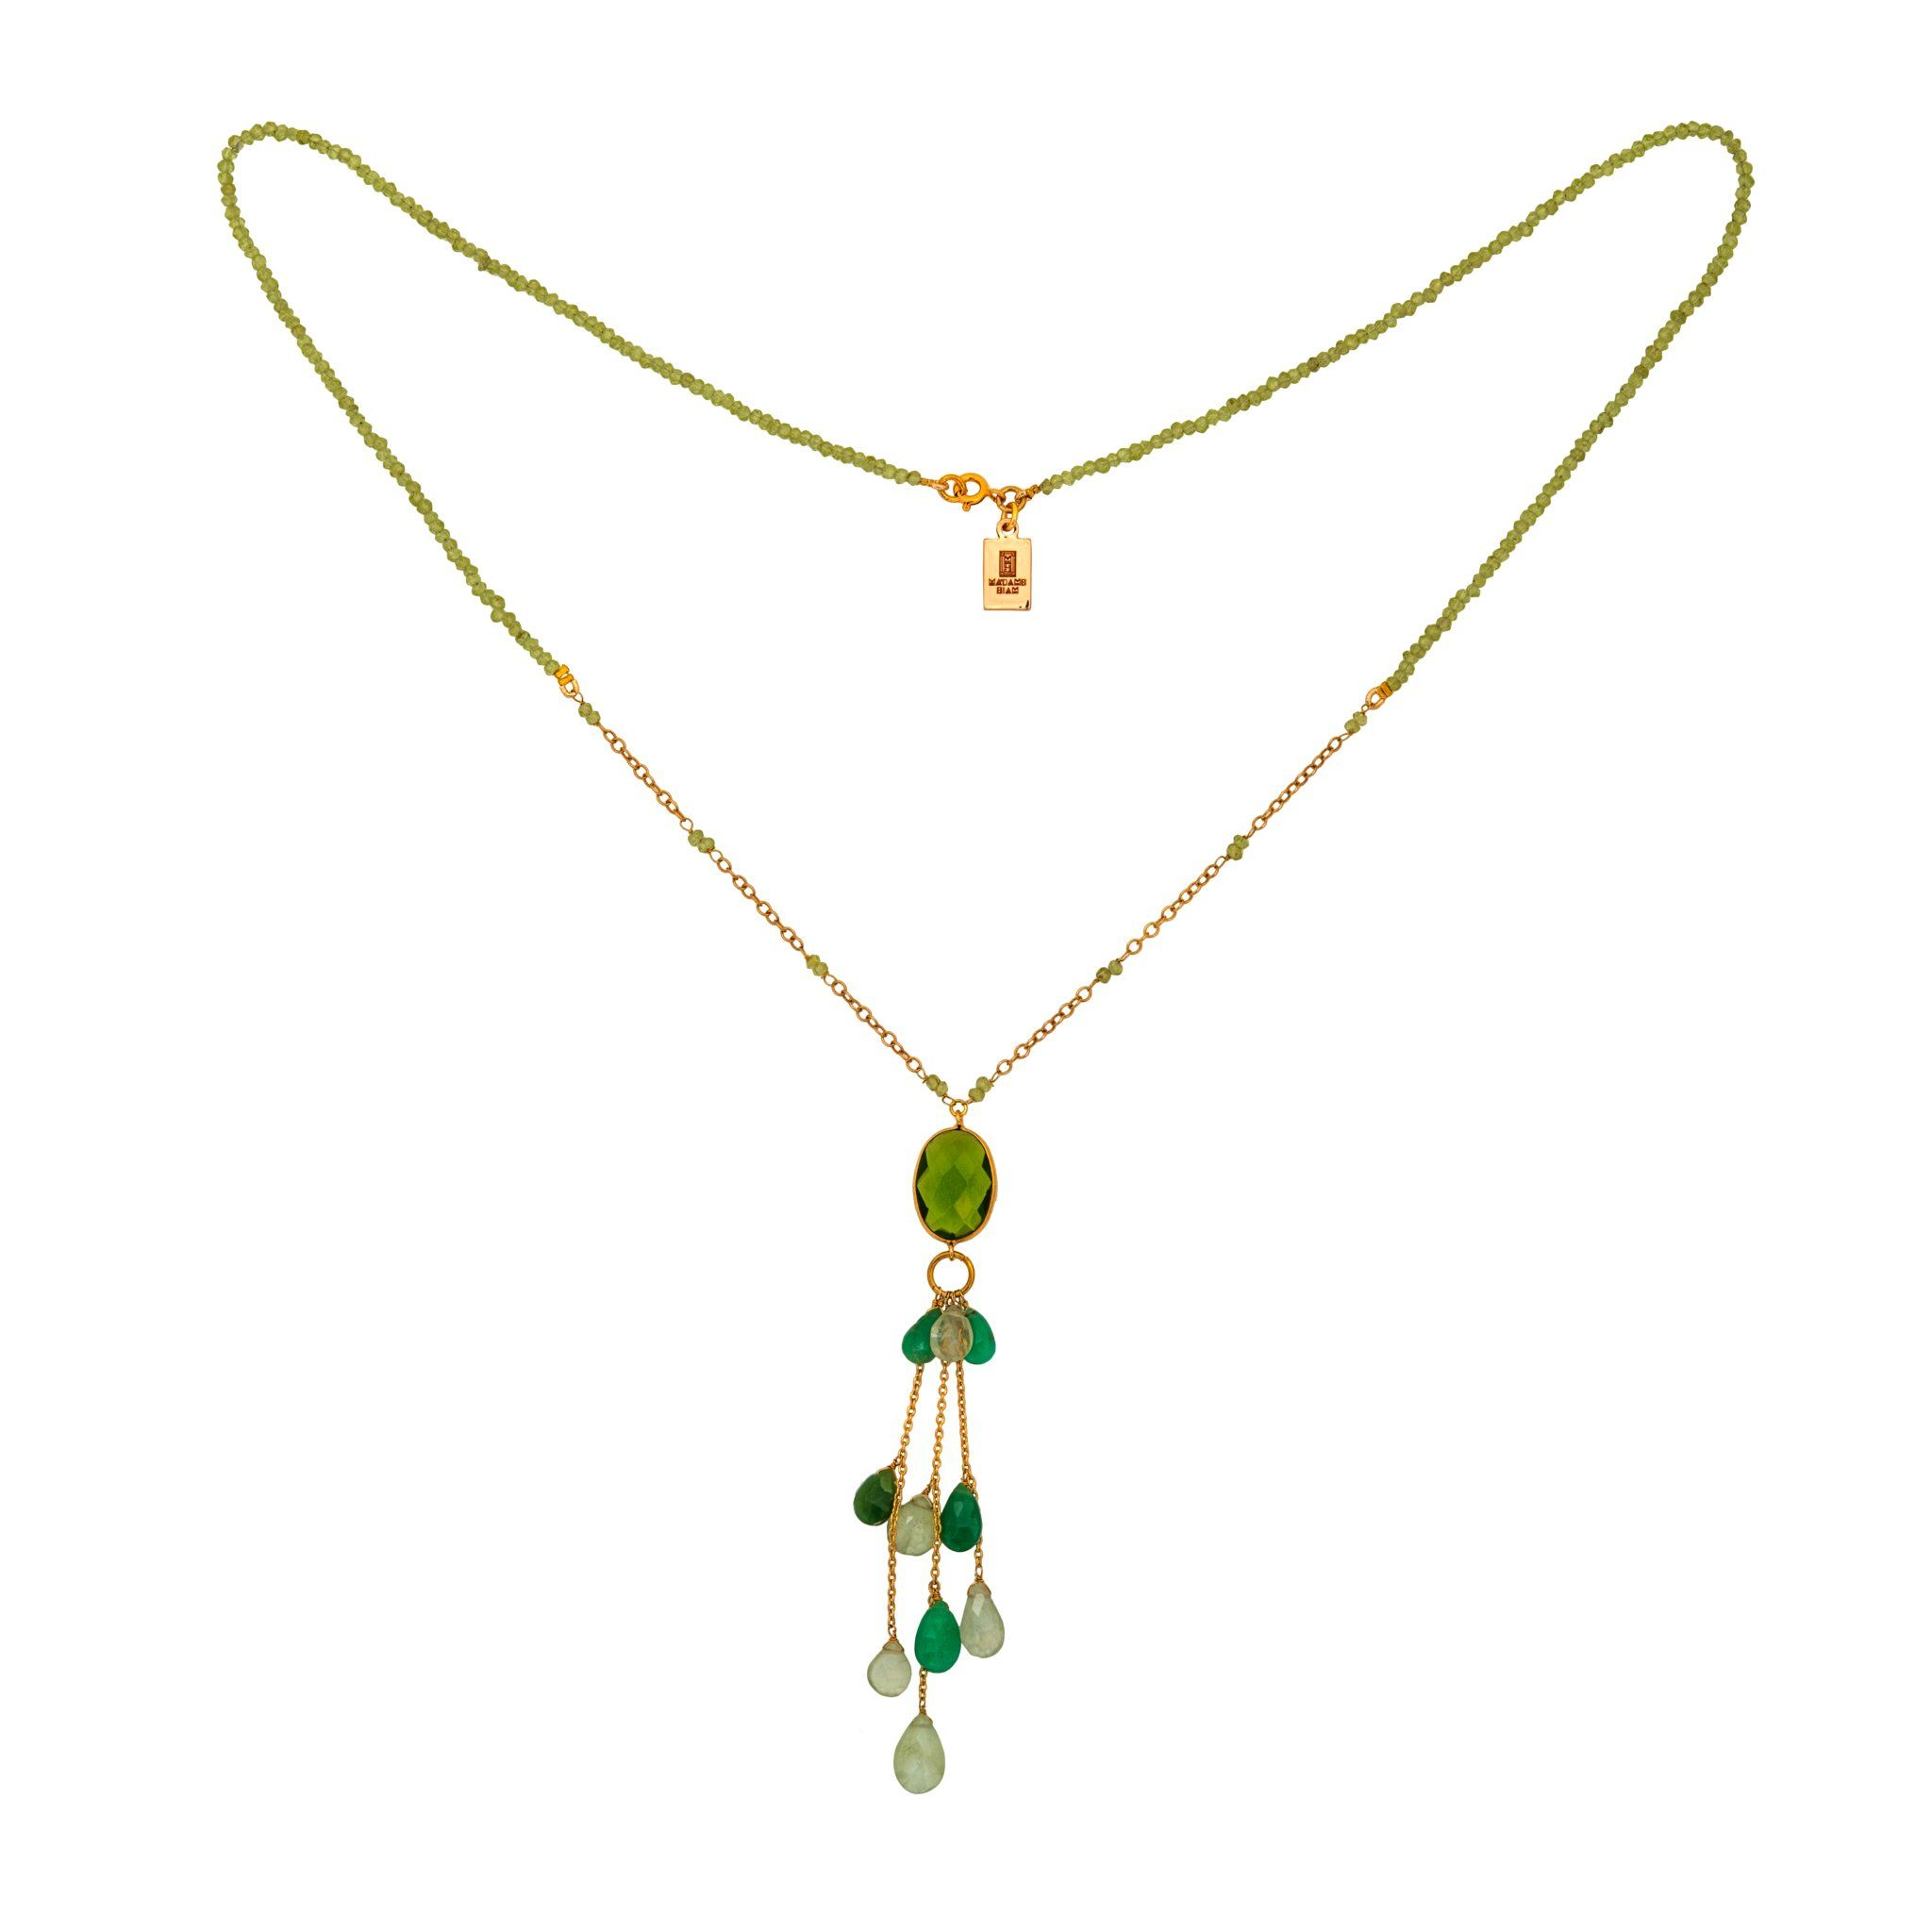 LUZ peridot long necklace with drops - MadamSiam